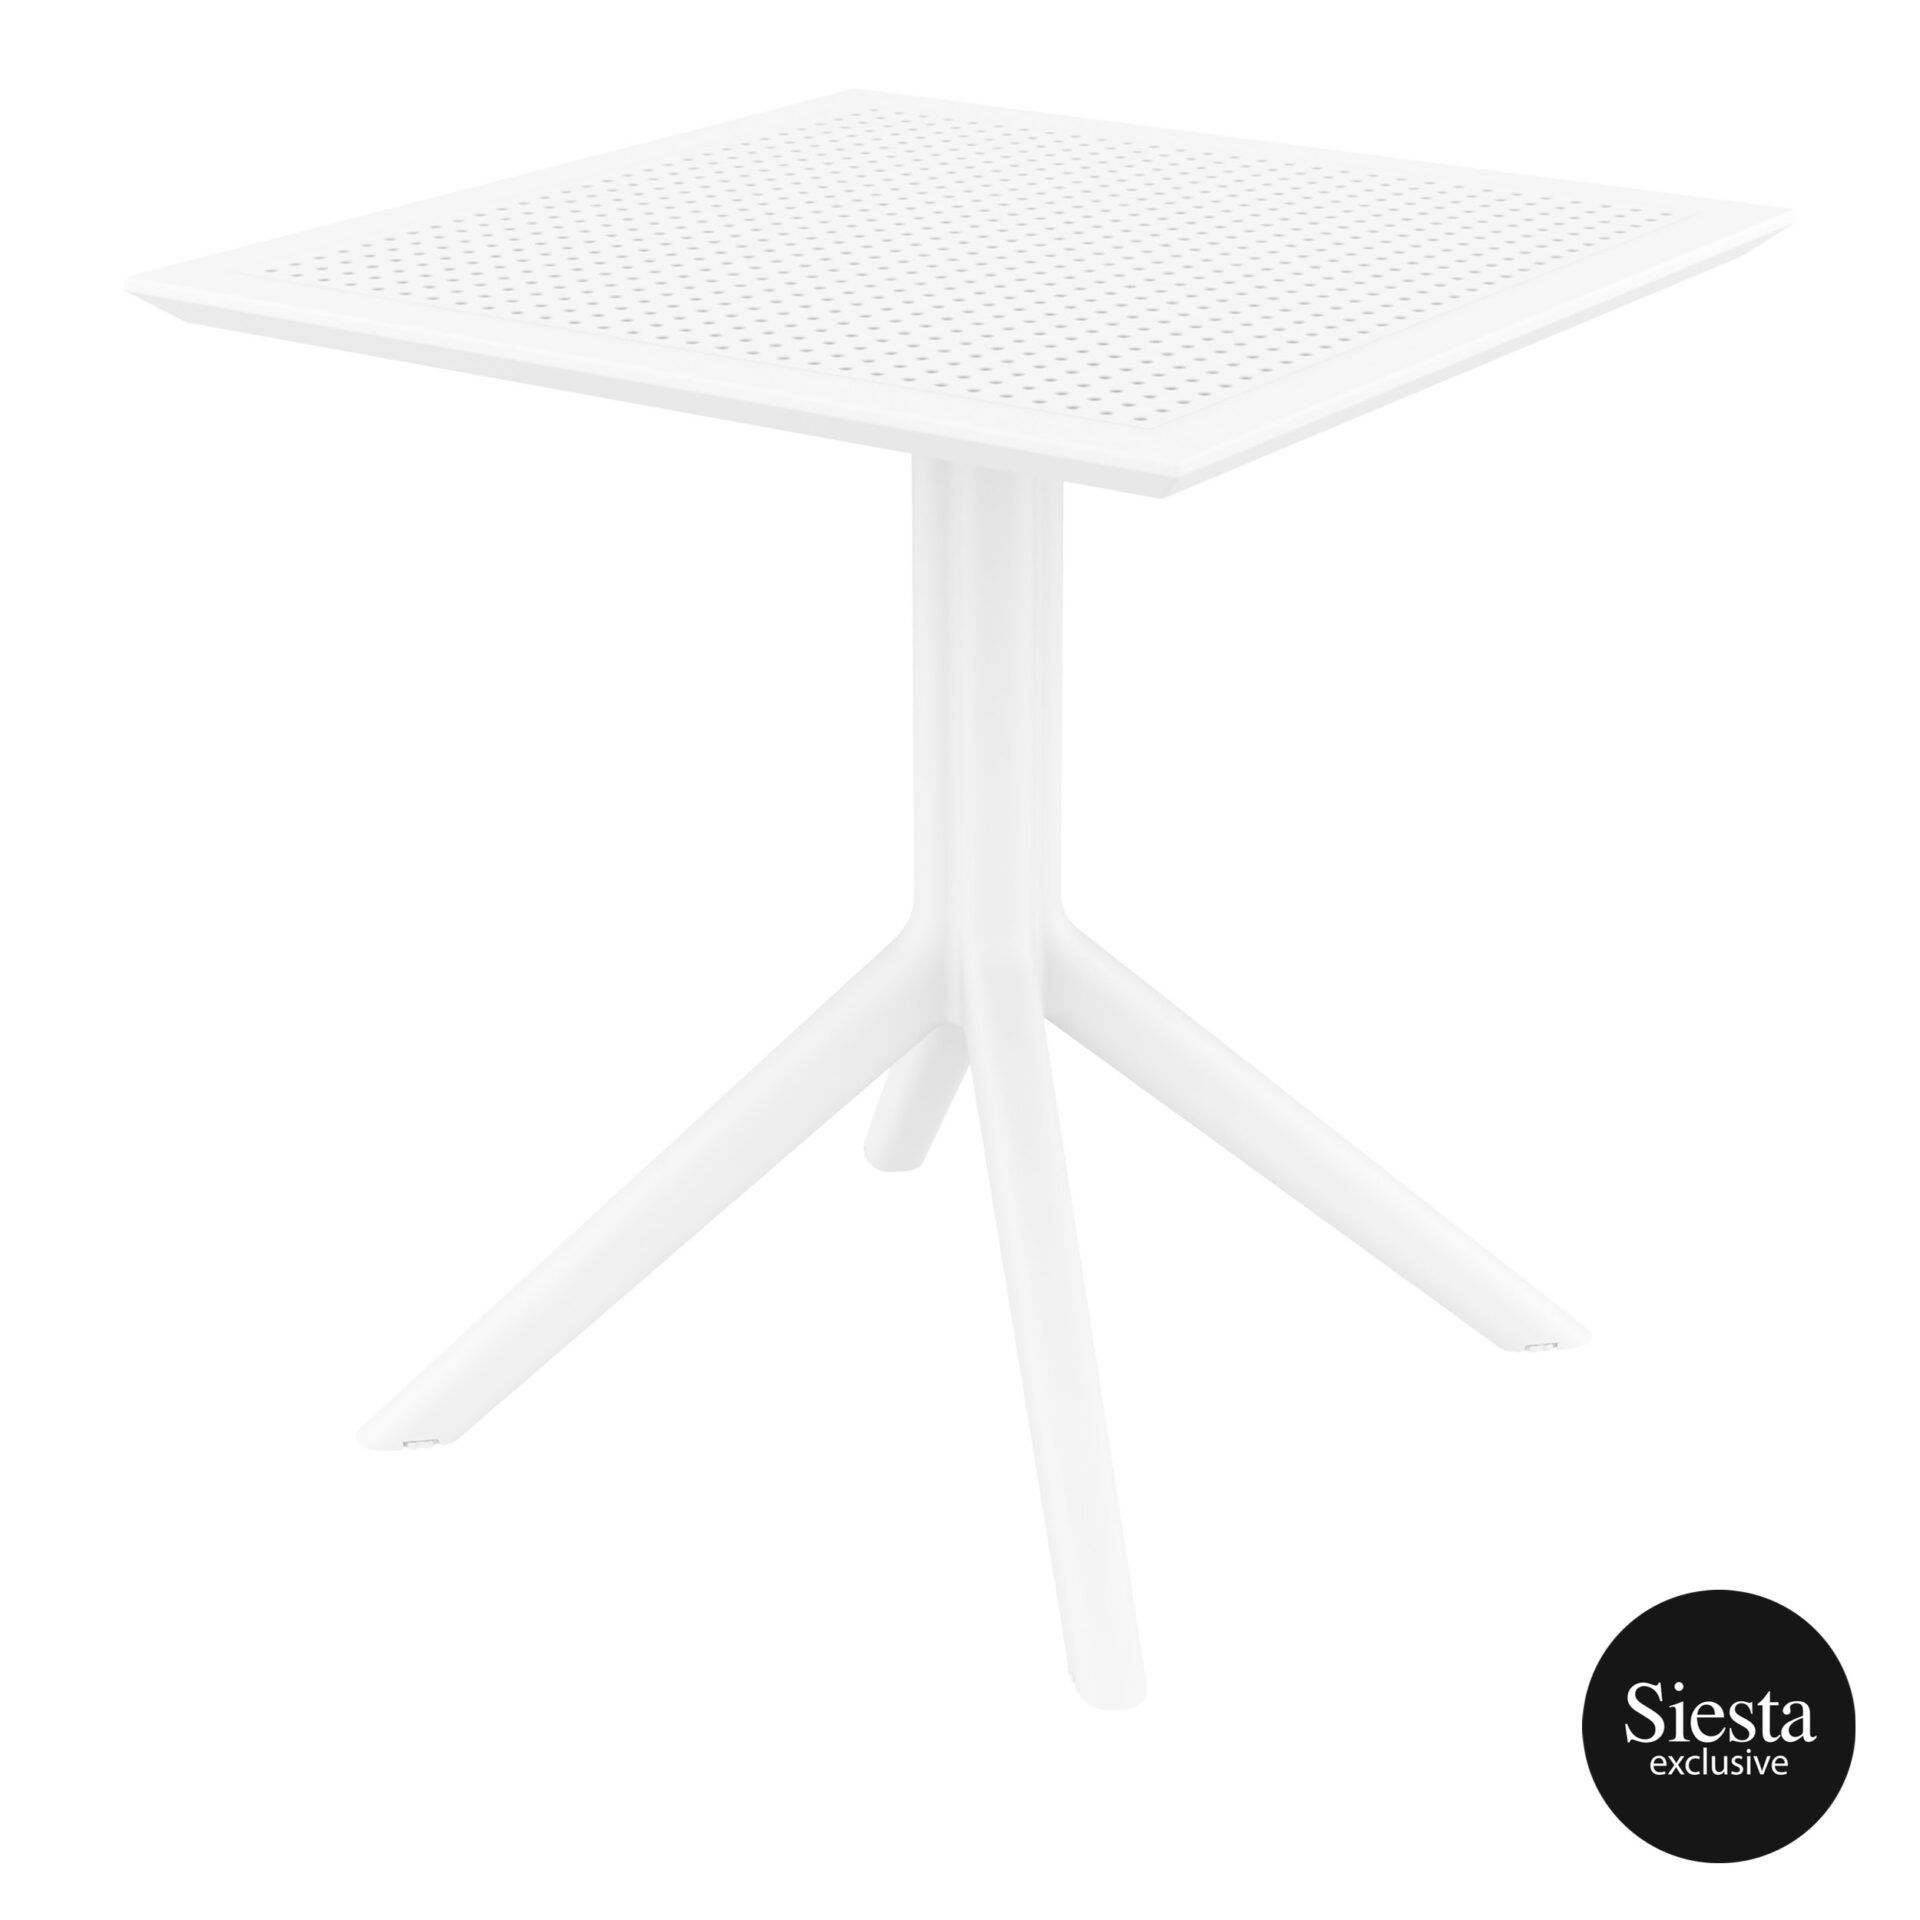 polypropylene outdoor cafe sky table 70 white front side 1